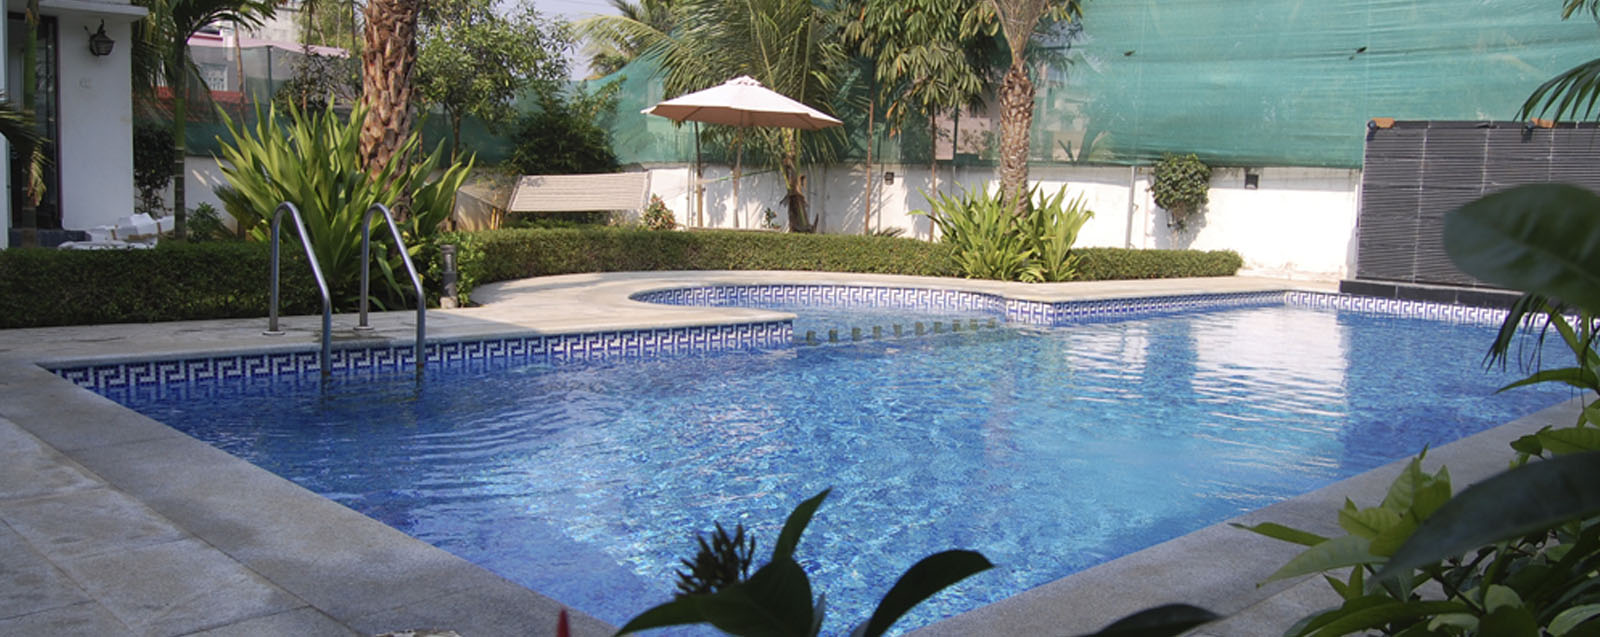 blosssoms associates landscape architect chennai swimming pool designers chennai garden